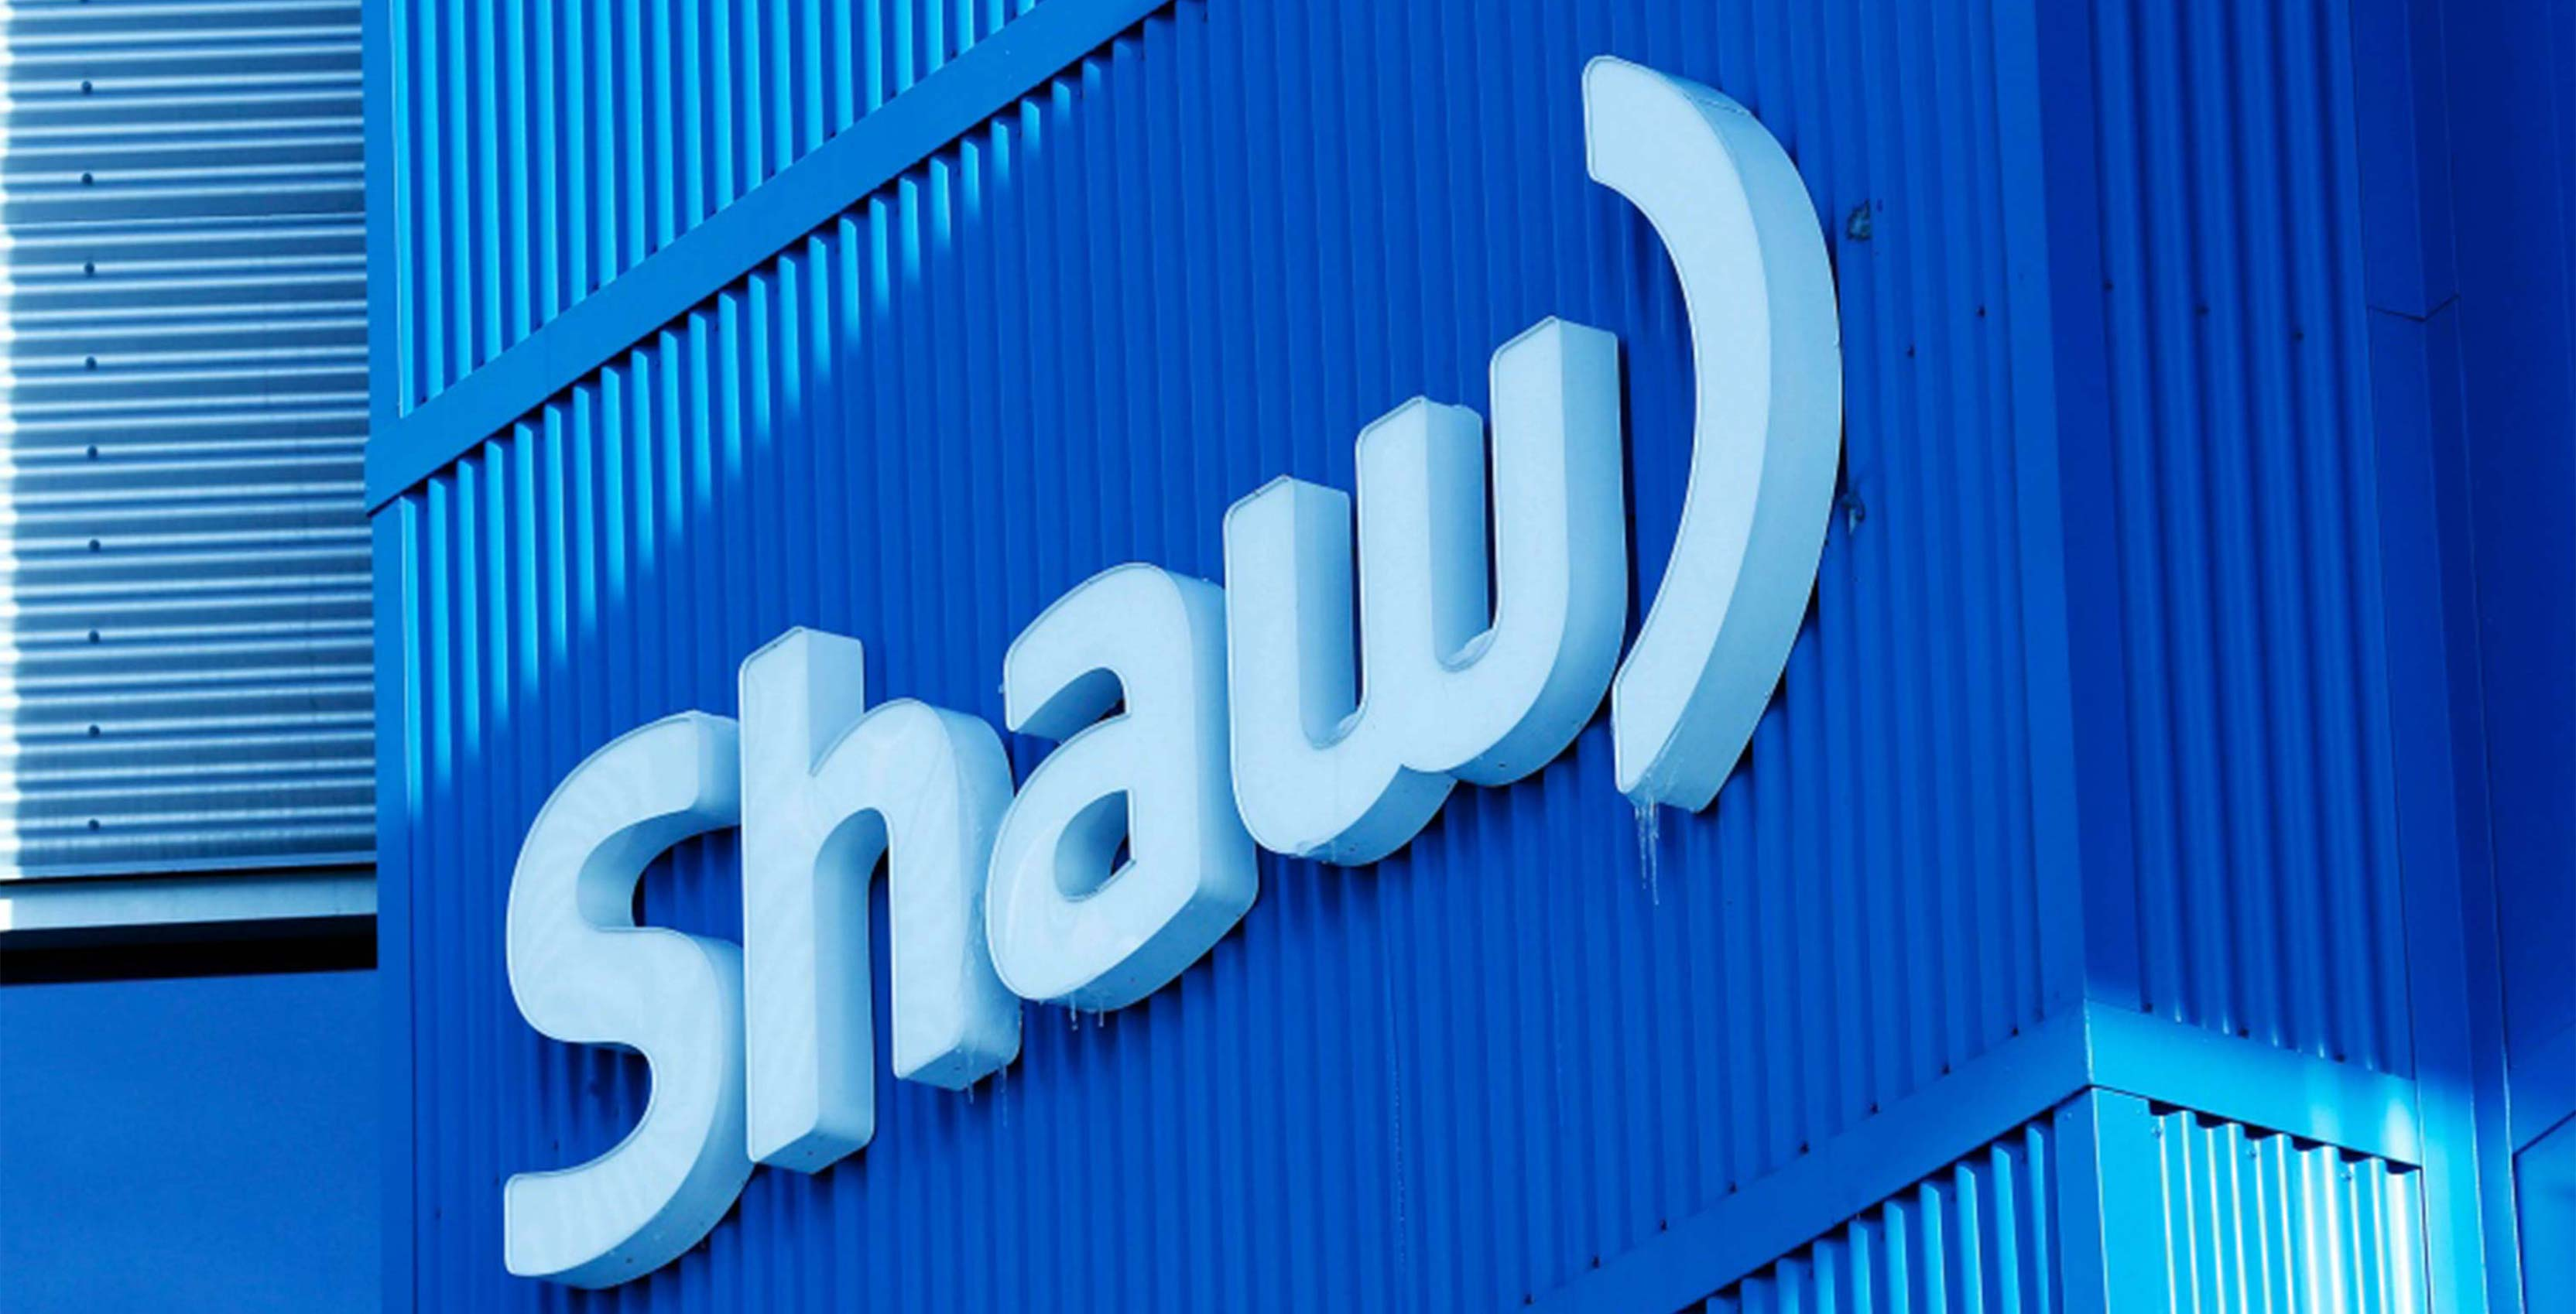 Shaw Communications (SJR.B) Price Target Cut to C$28.00